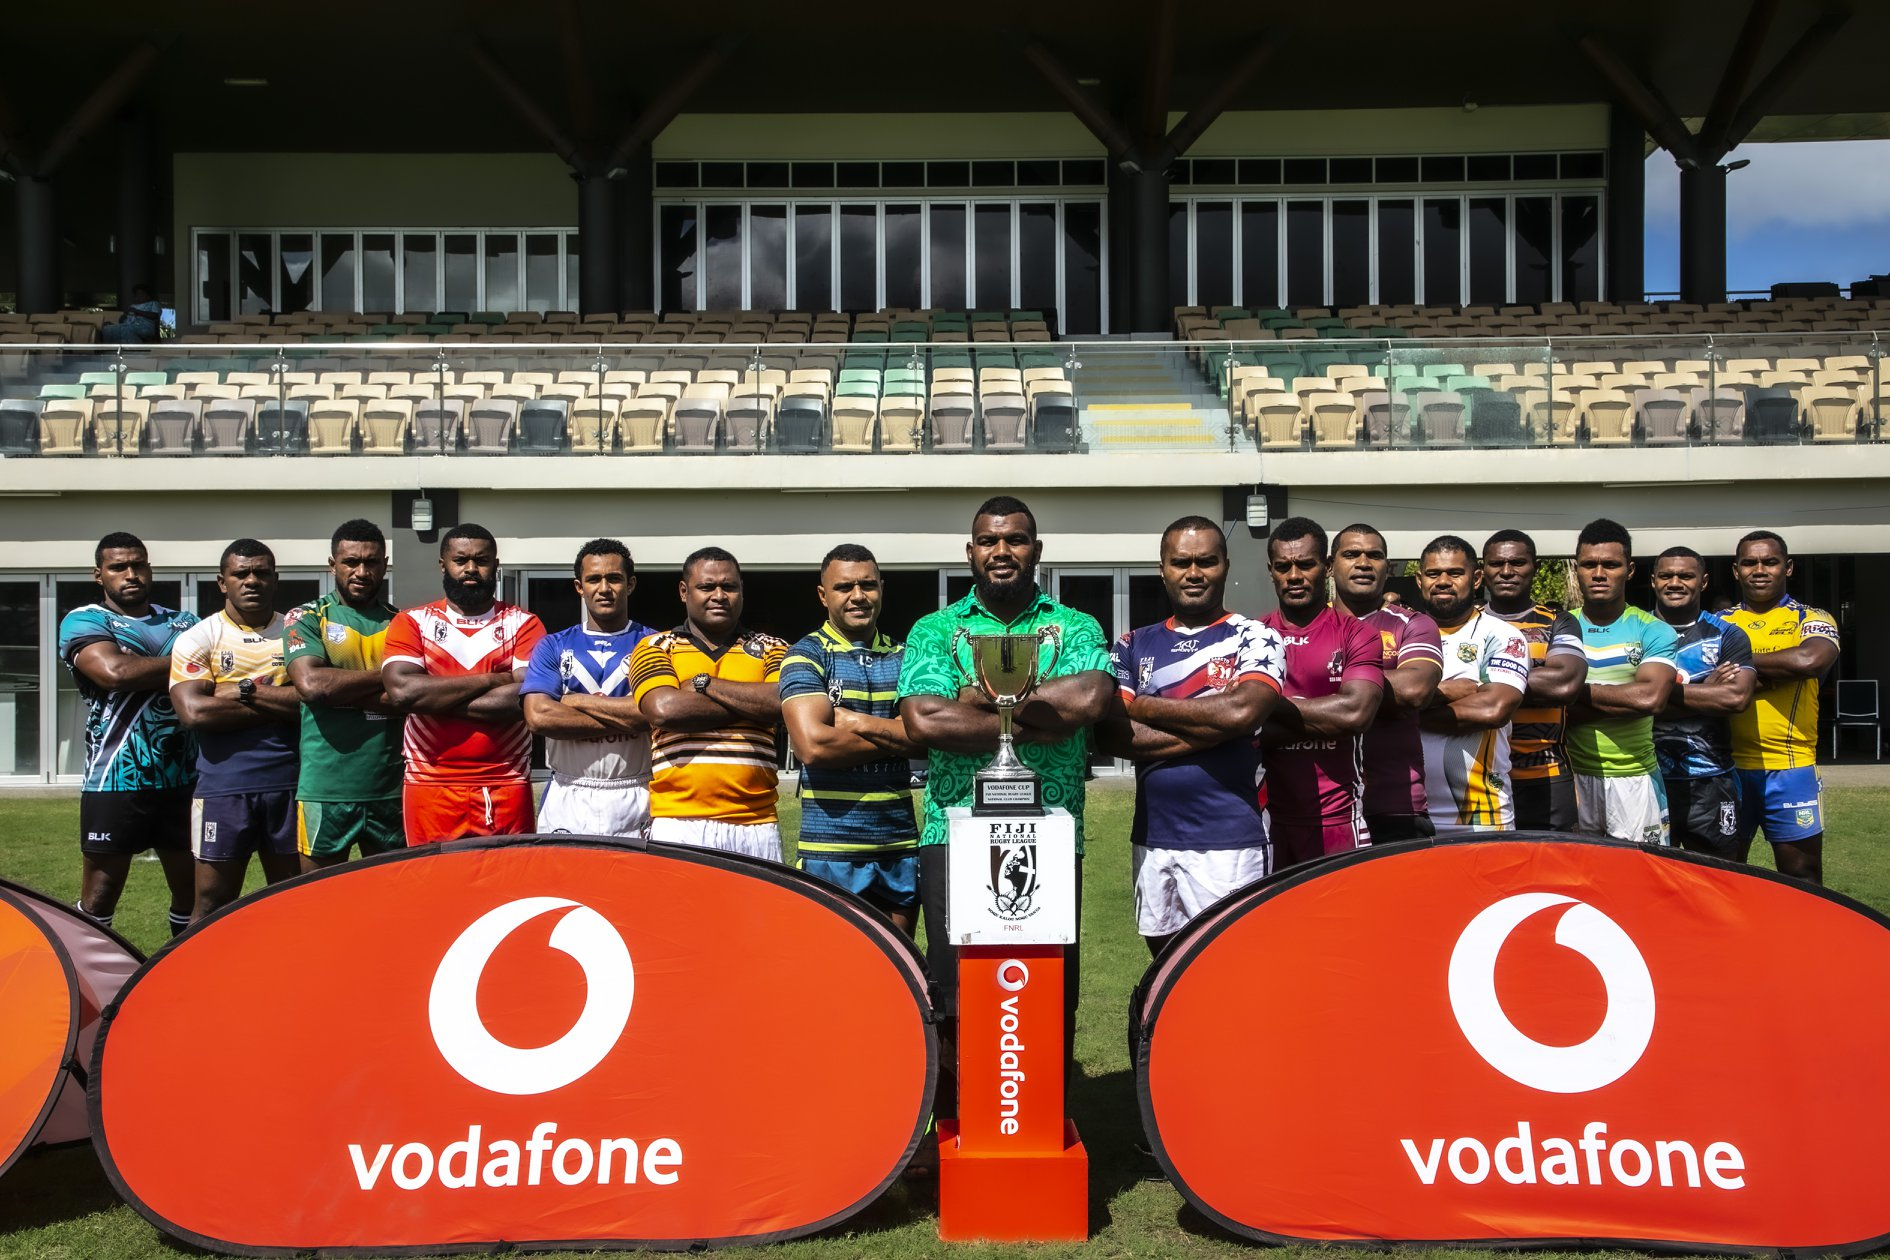 2020 FNRL Vodafone Cup officially launched